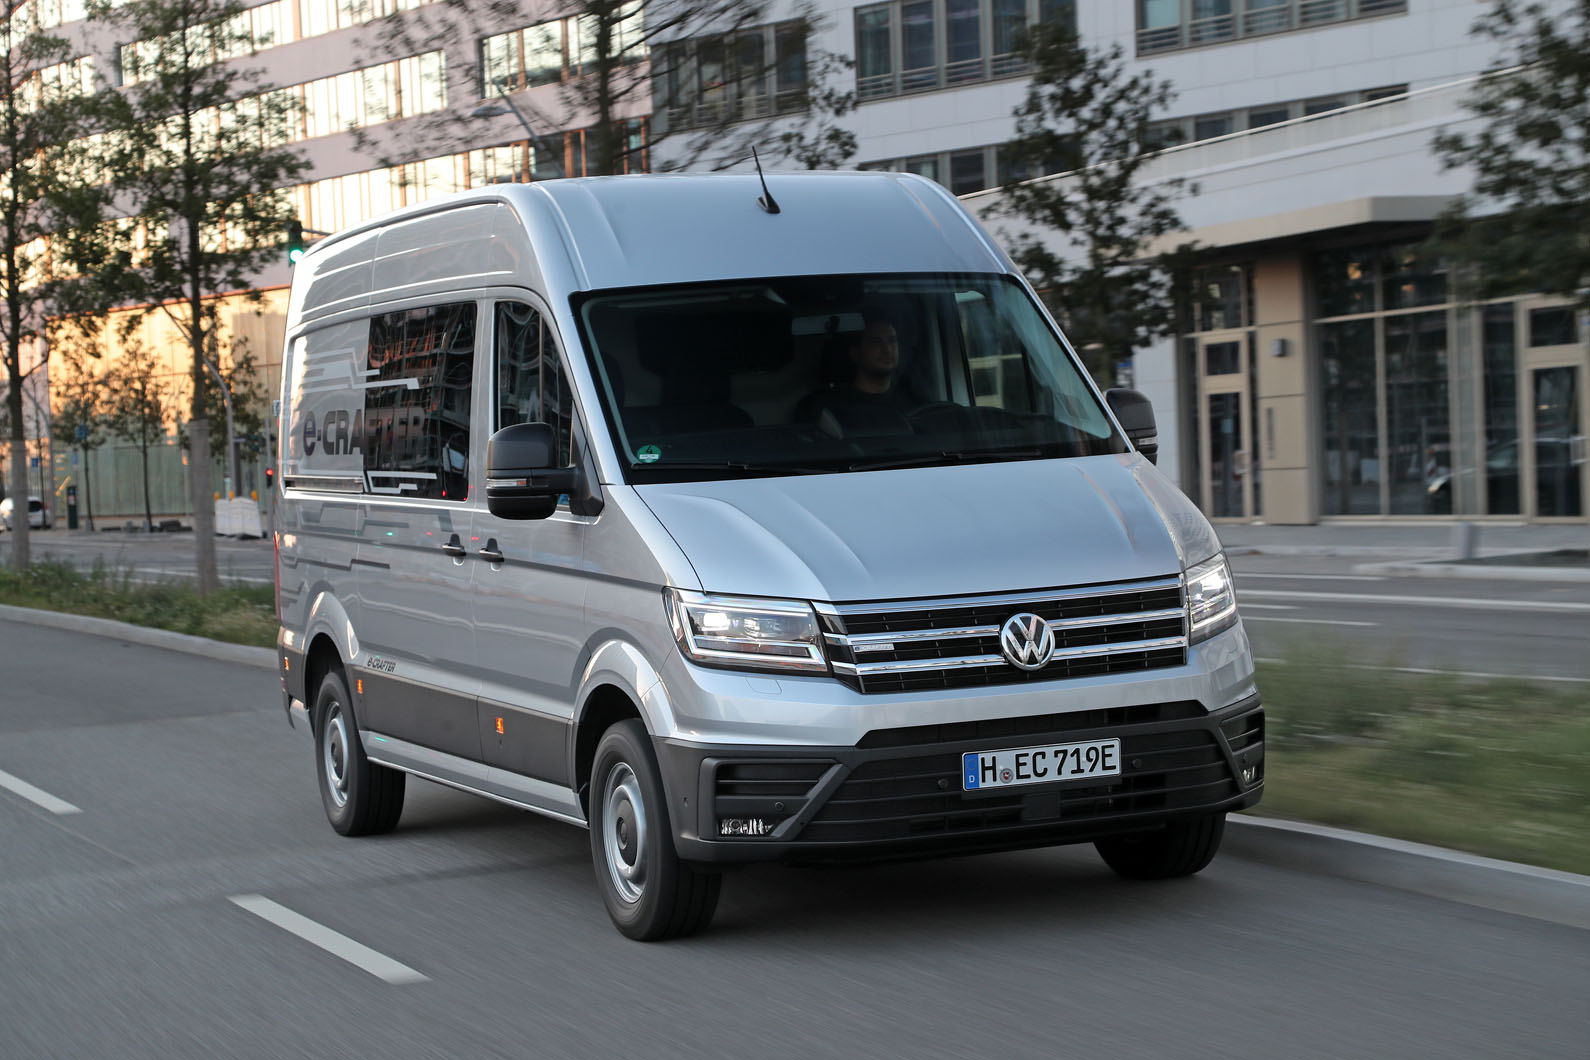 Best 2019 Volkswagen Crafter Reviews - Crafter - Car Reviews